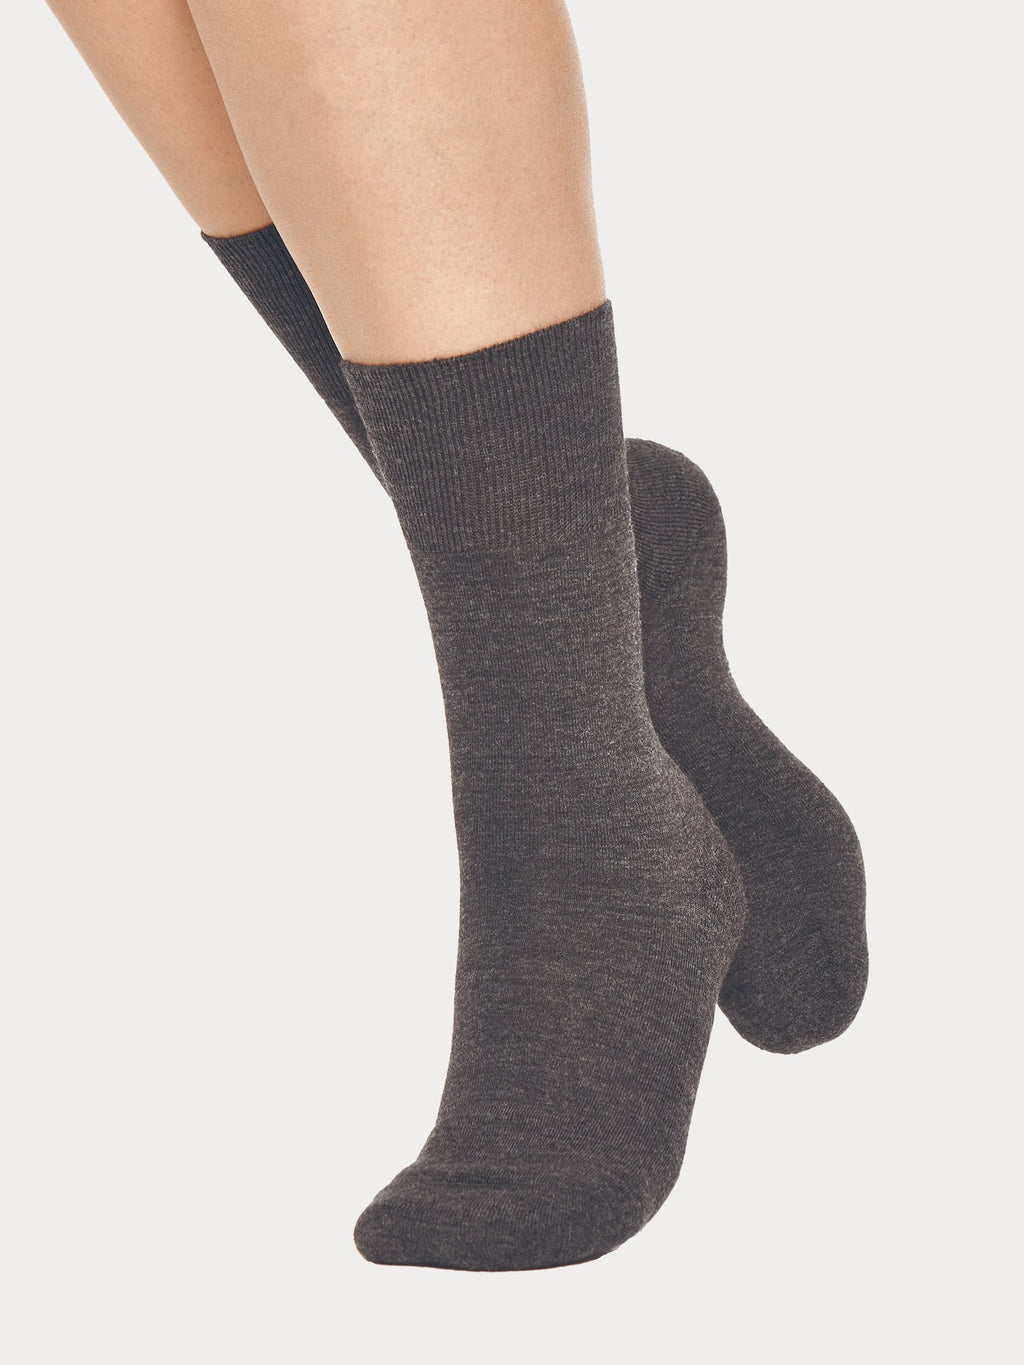 Vogue Terry Sole Comfort Socks